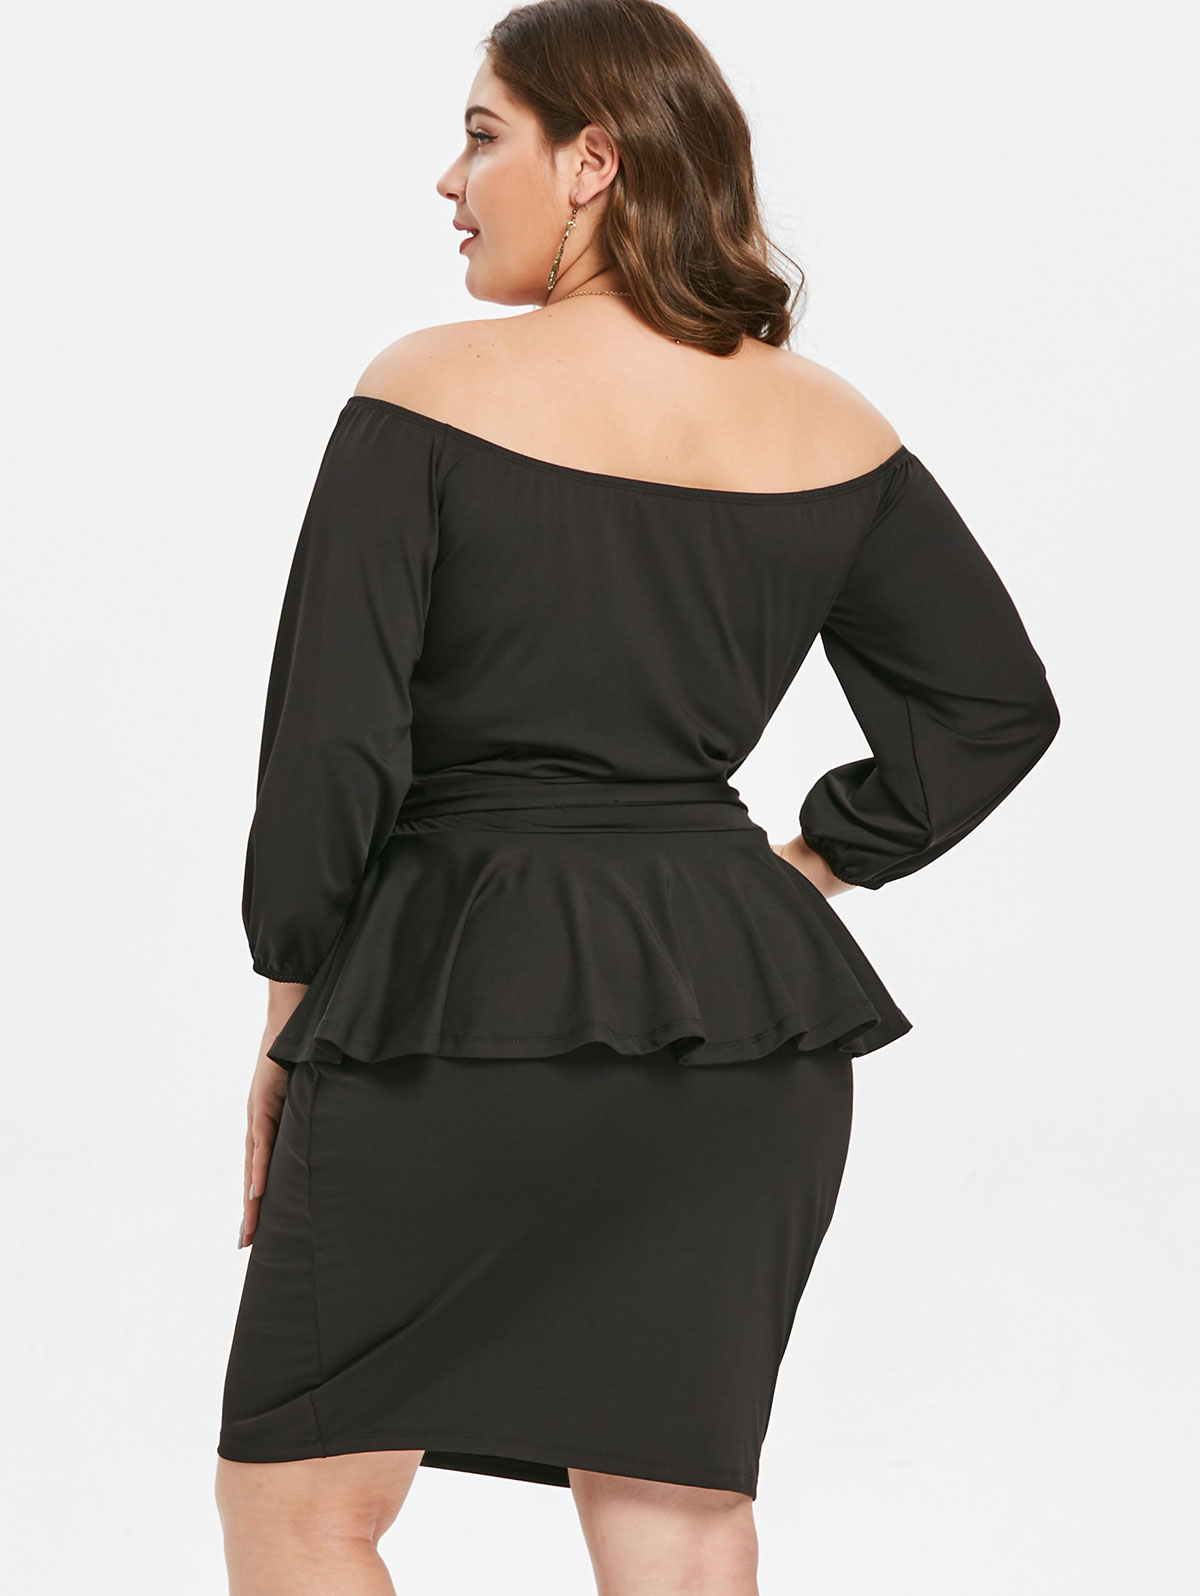 7a1f37891f Wipalo Plus Size Off The Shoulder 3/4 Sleeves Belted Peplum Dress ...